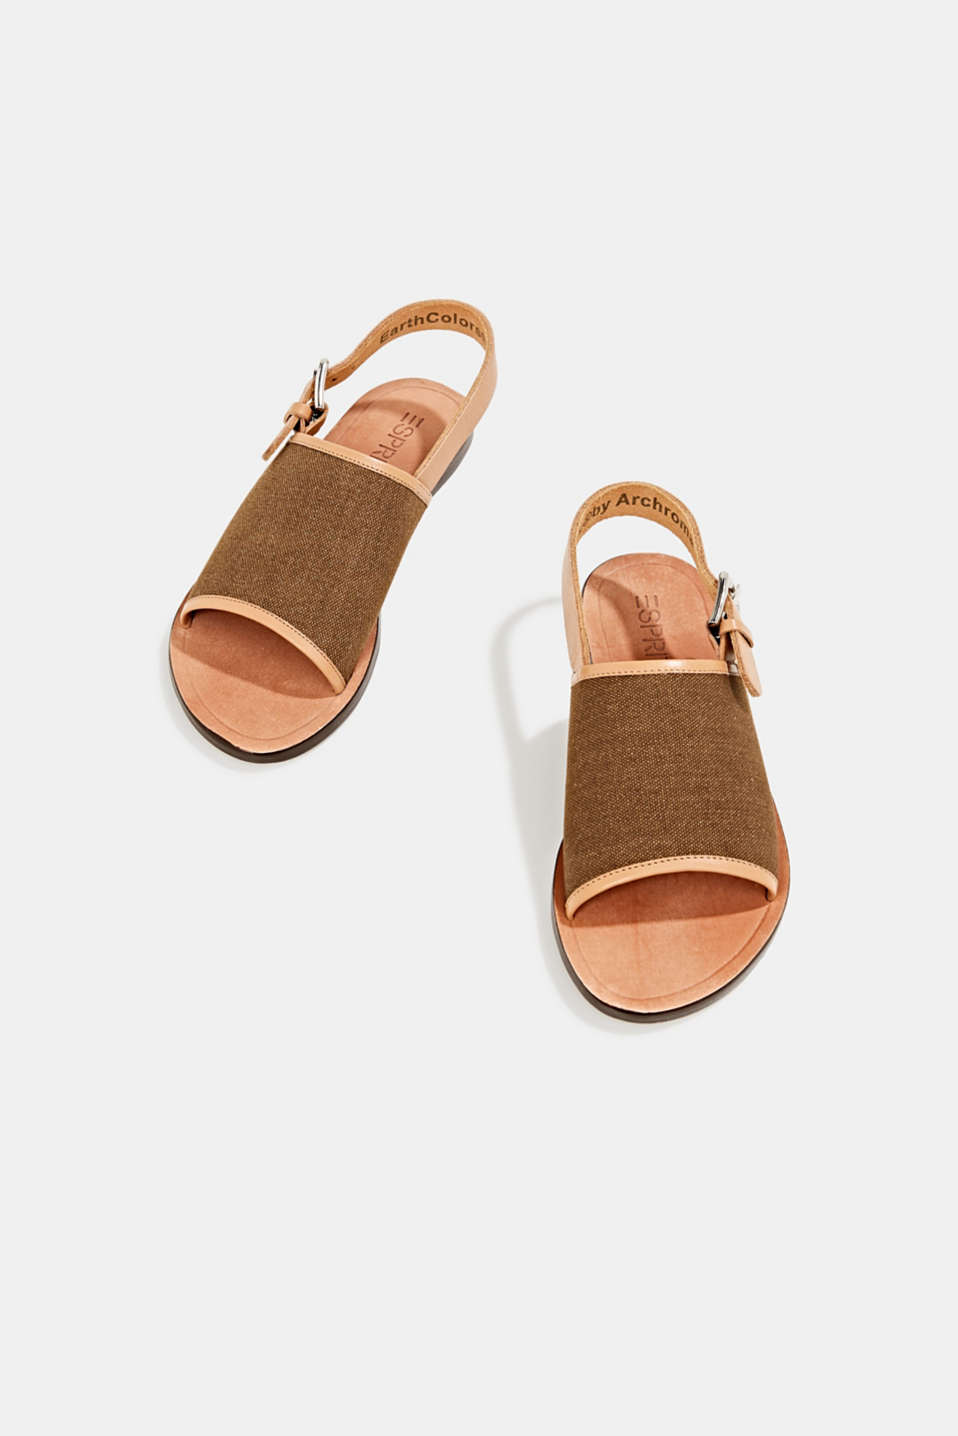 EarthColors® canvas sandals, SKIN BEIGE, detail image number 1